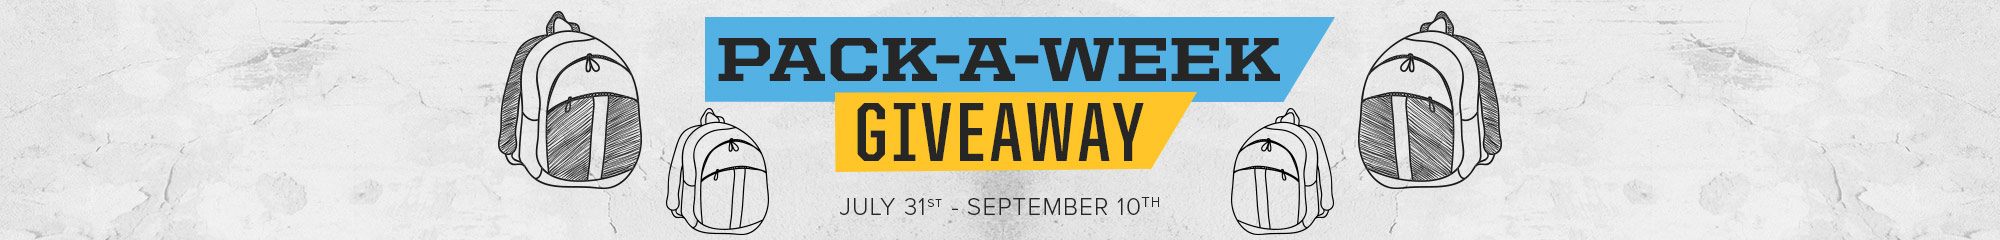 Pack-A-Week Giveaway. July 31st - September 10th, 2017